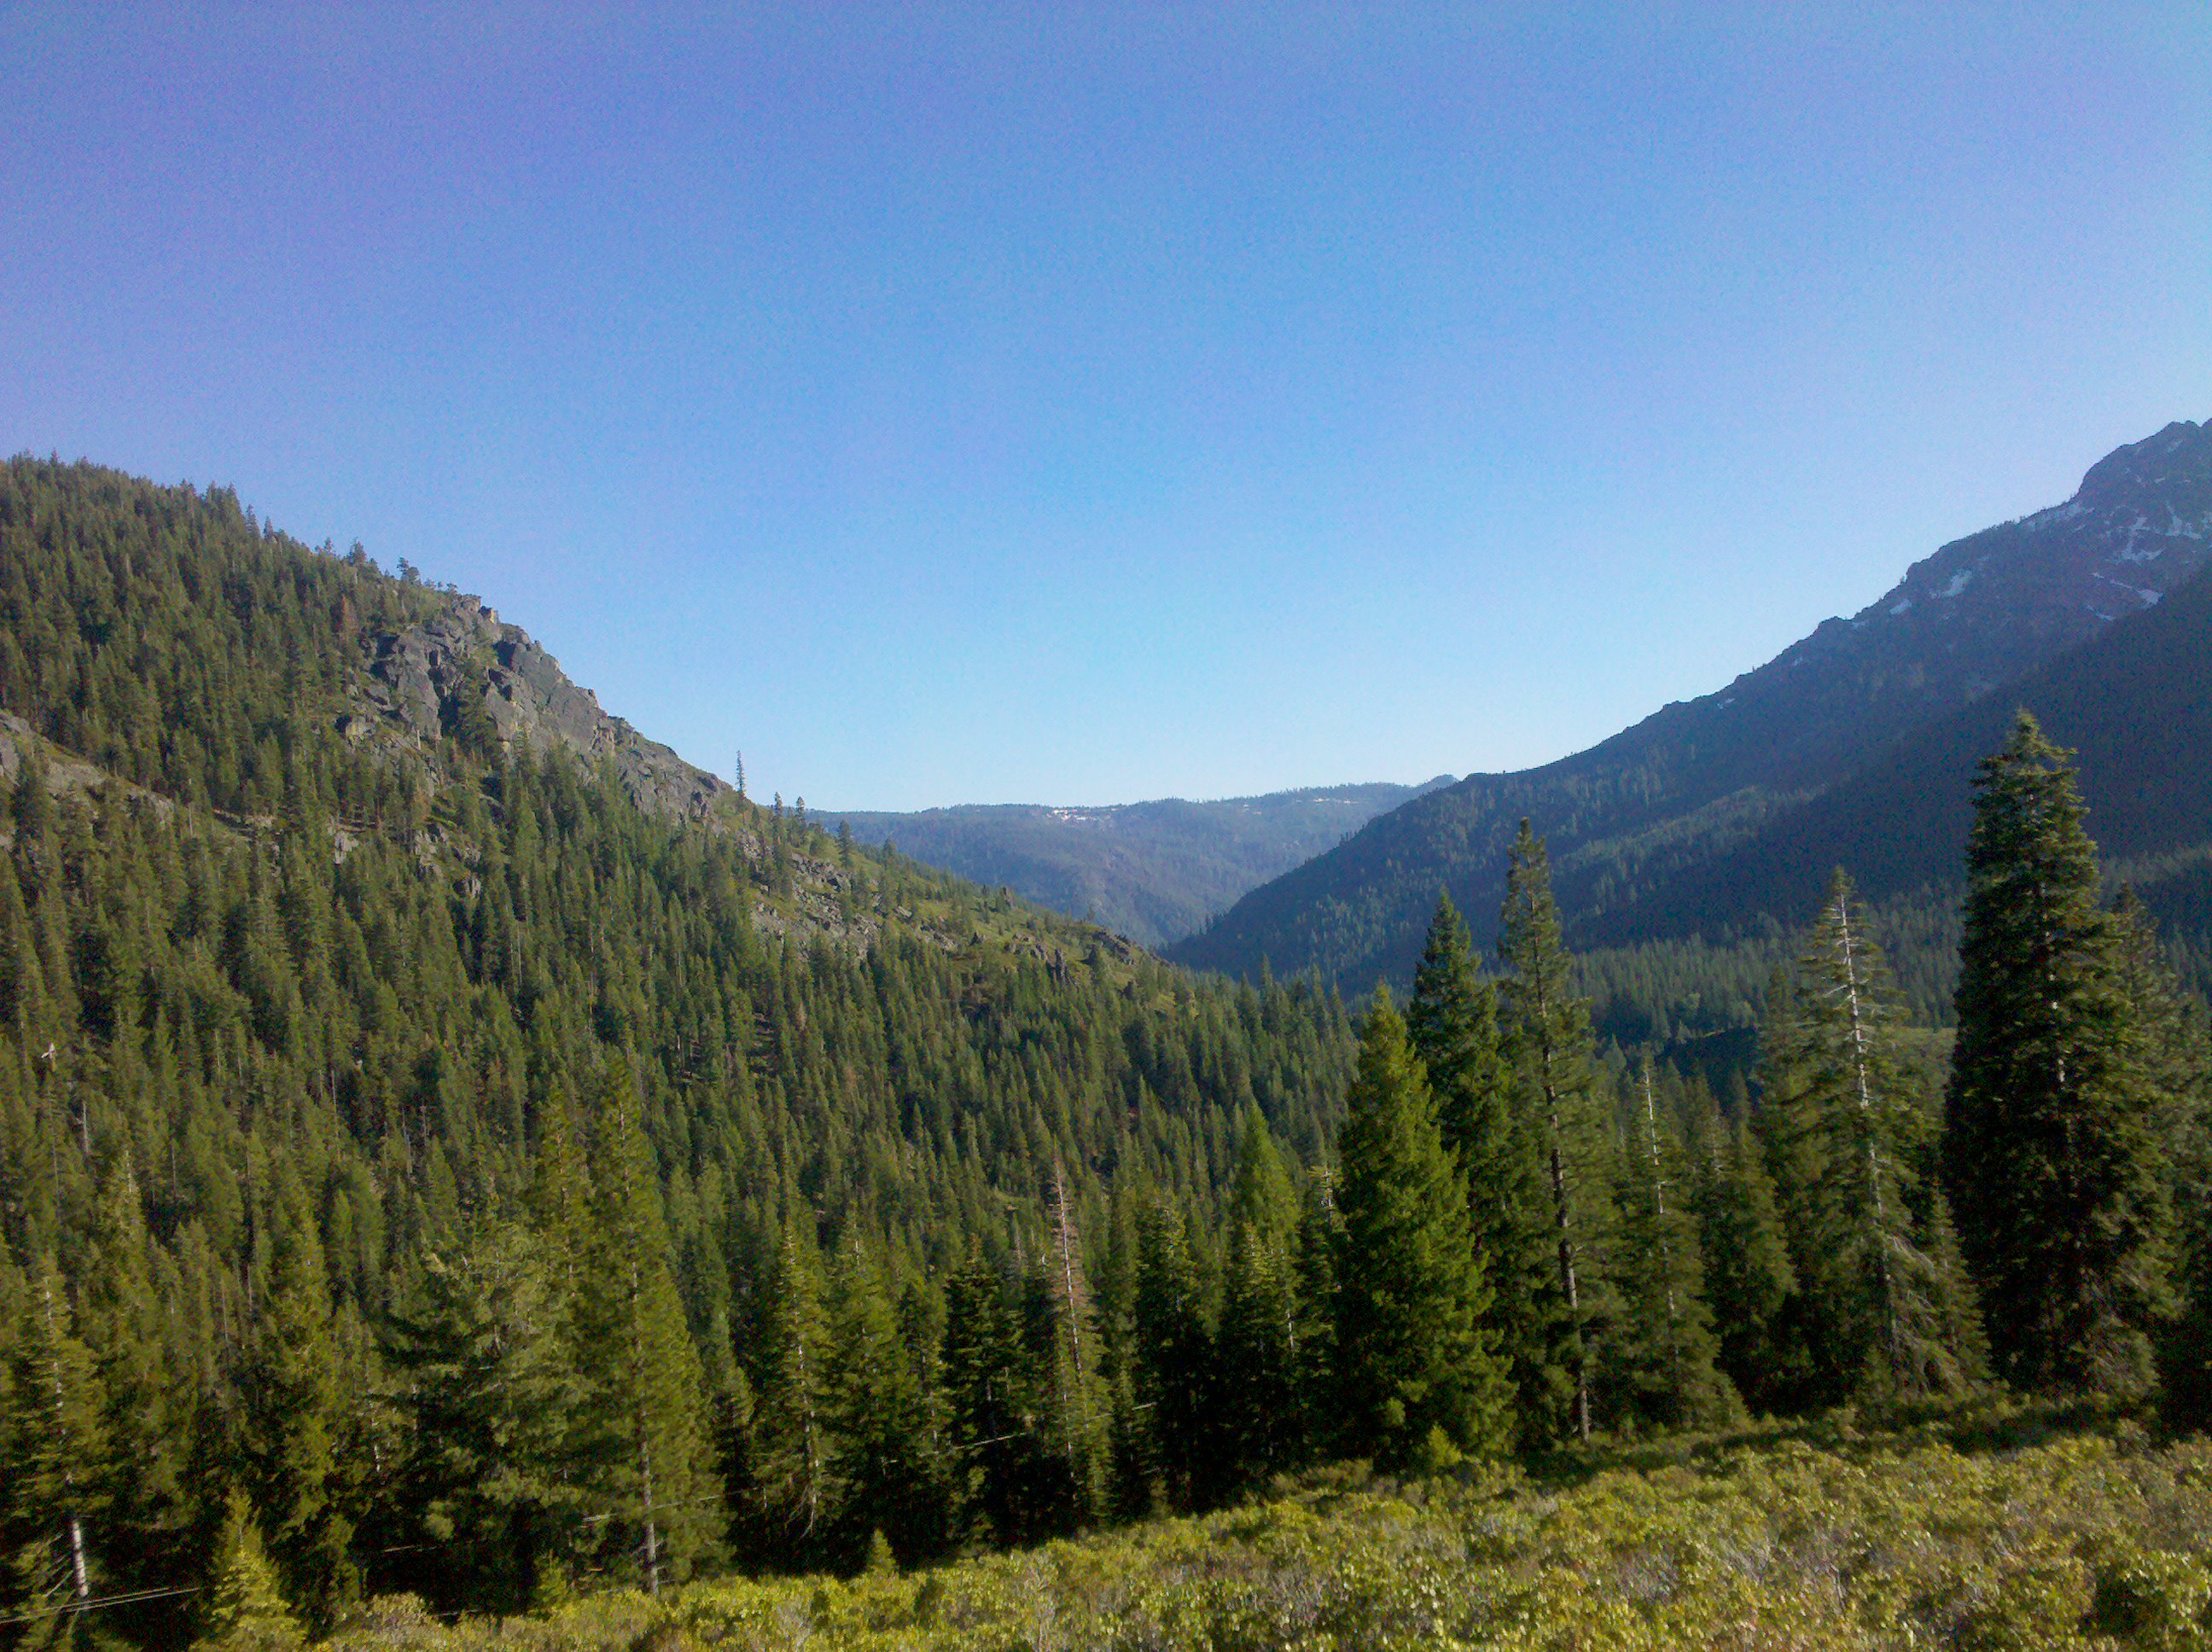 view west from the Gold Lake Highway, Tahoe National Forest